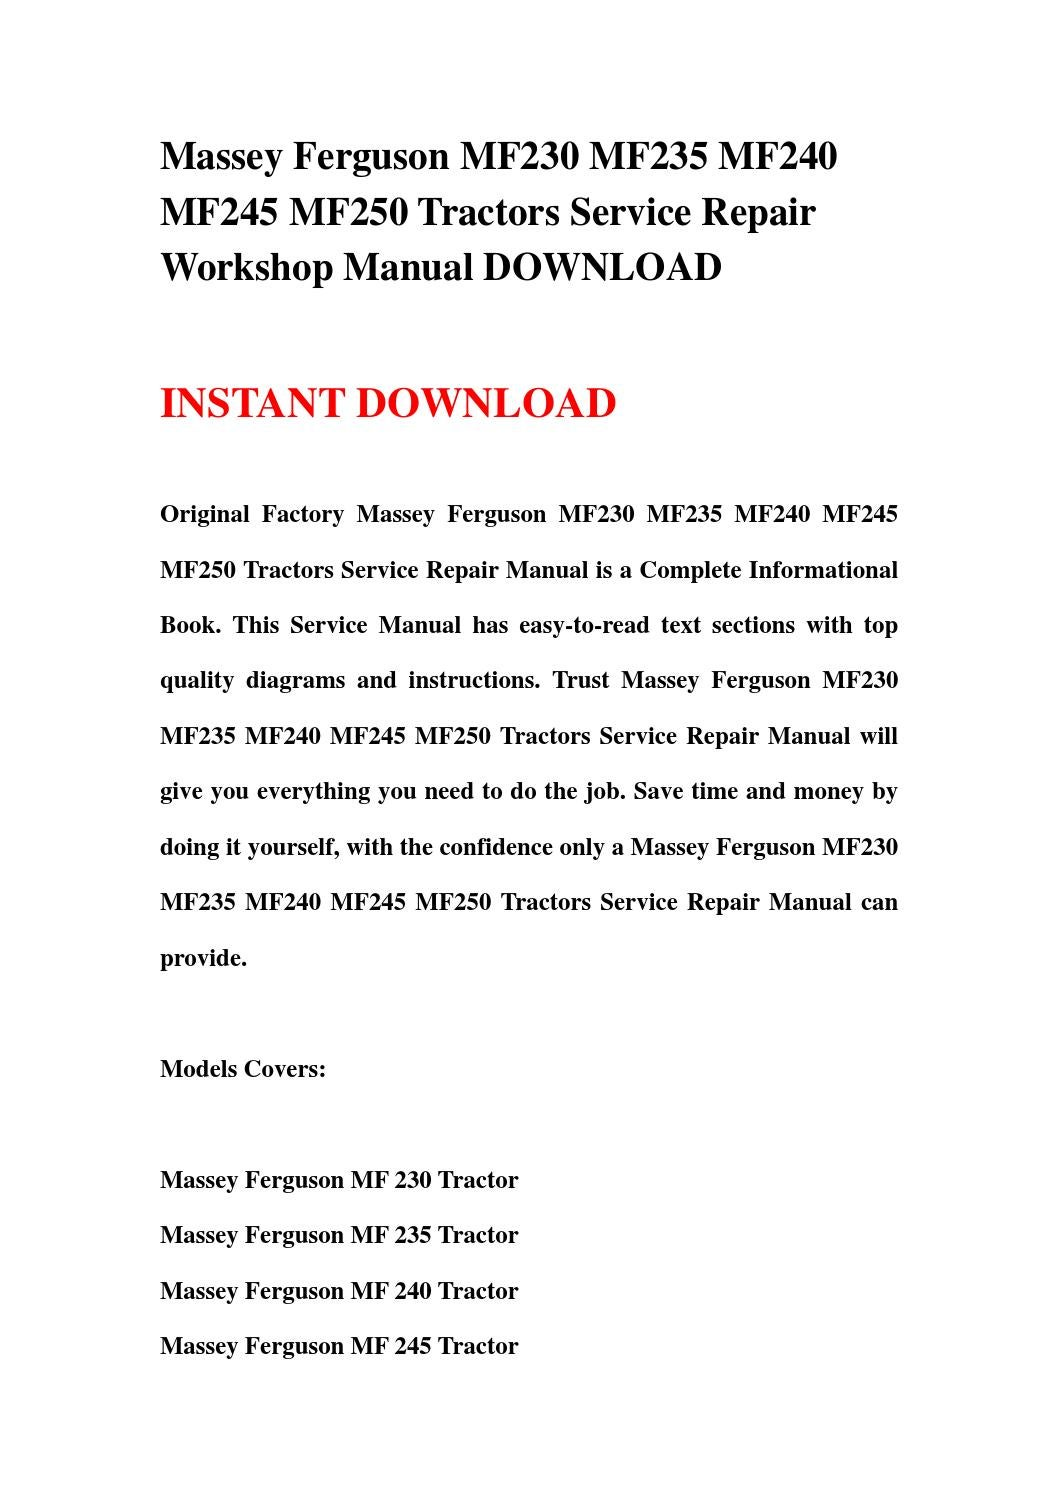 massey ferguson 230 manual pdf